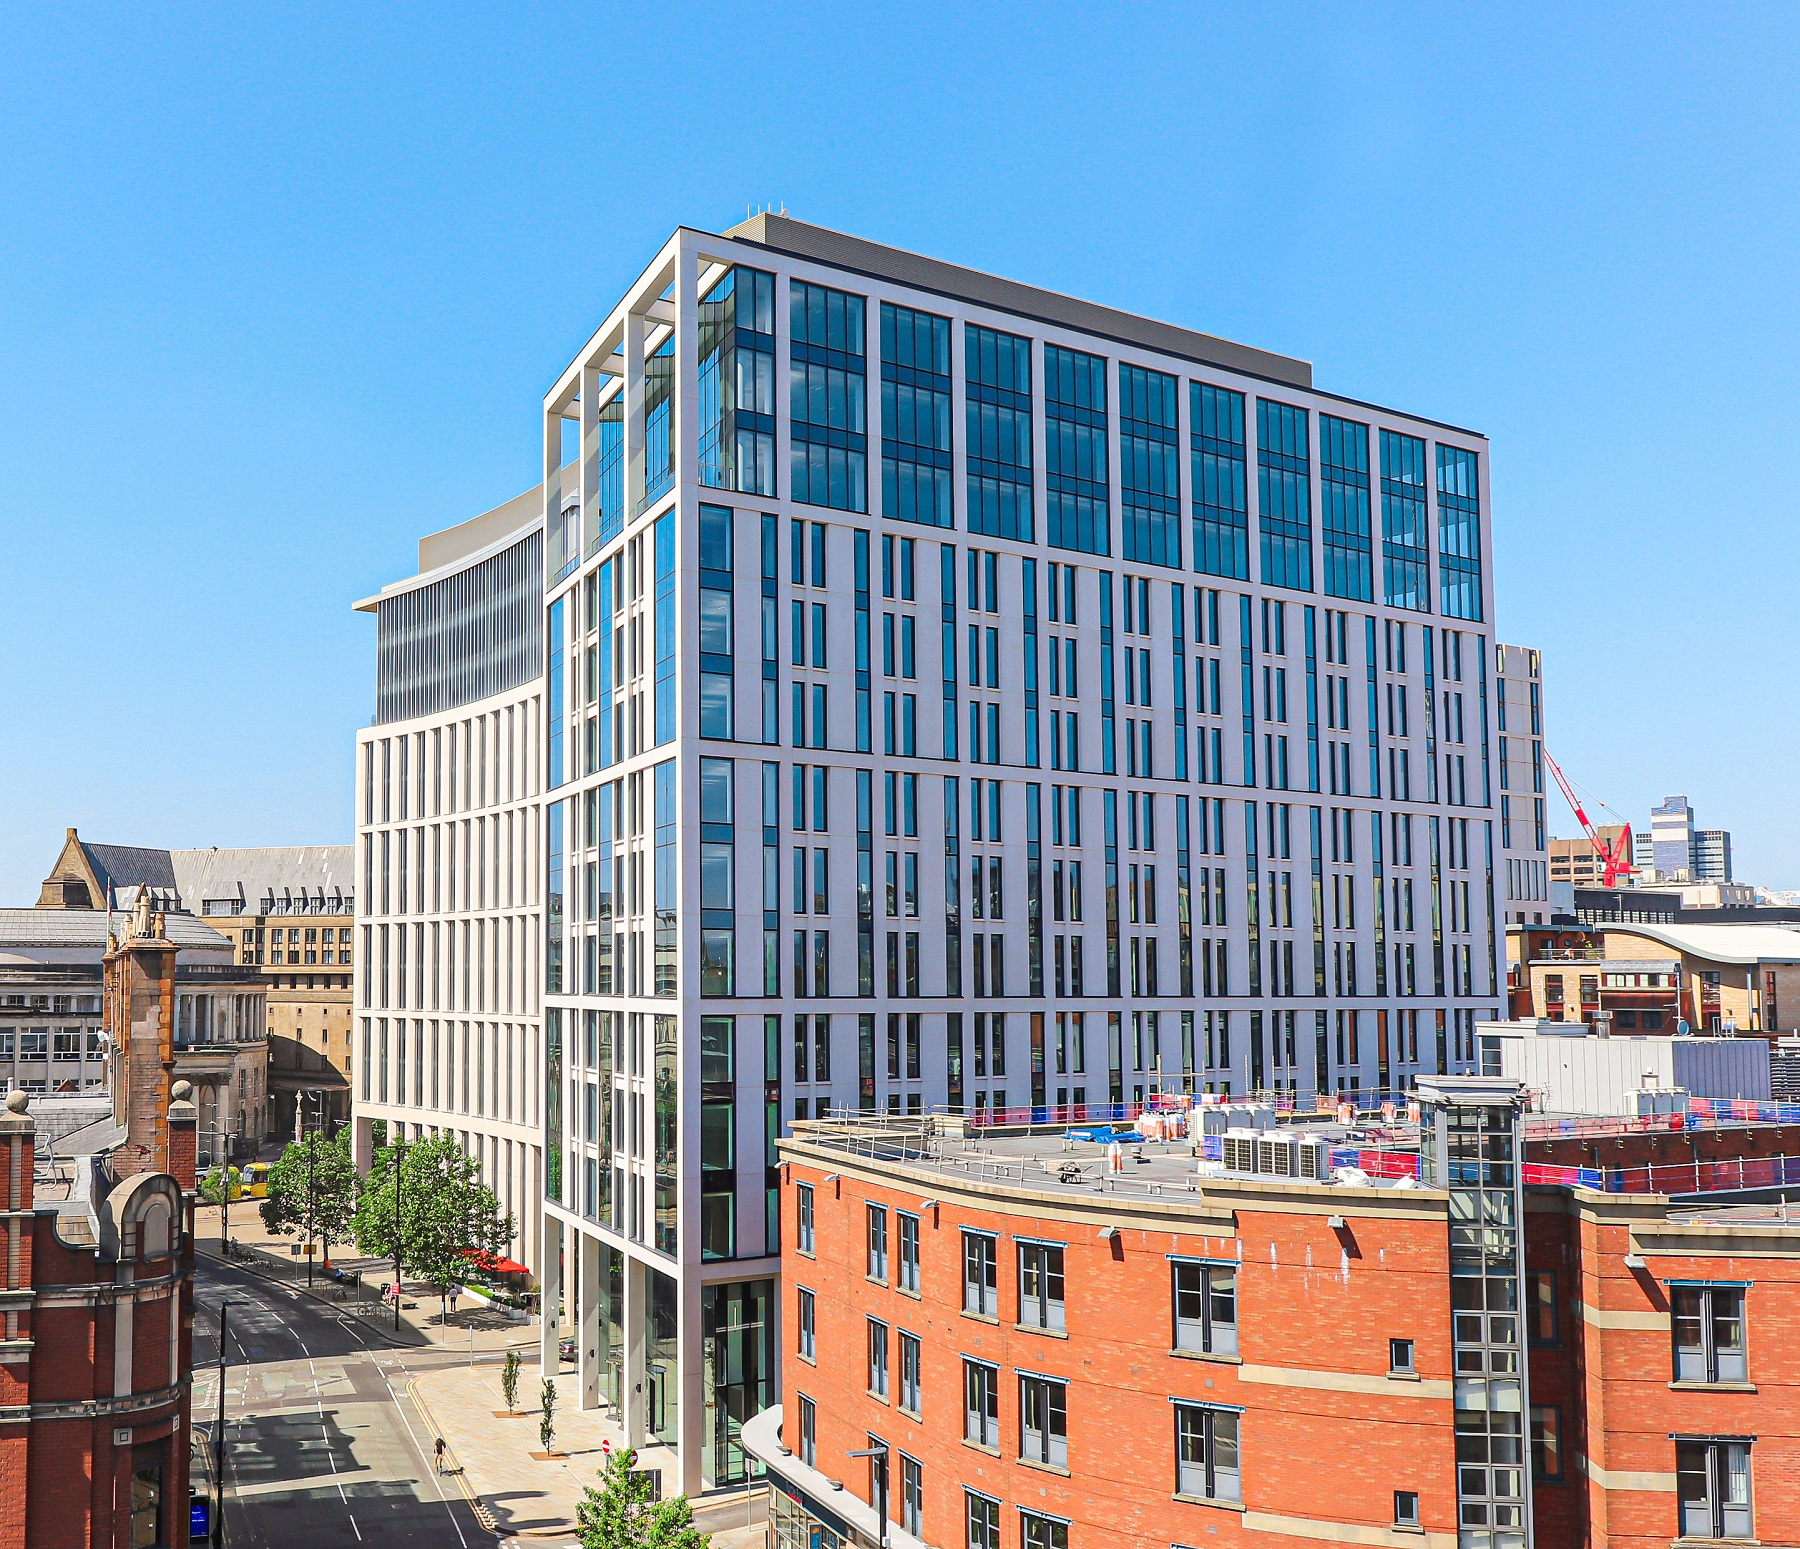 BARINGS SECURES GRANT THORNTON AT LANDMARK, MANCHESTER